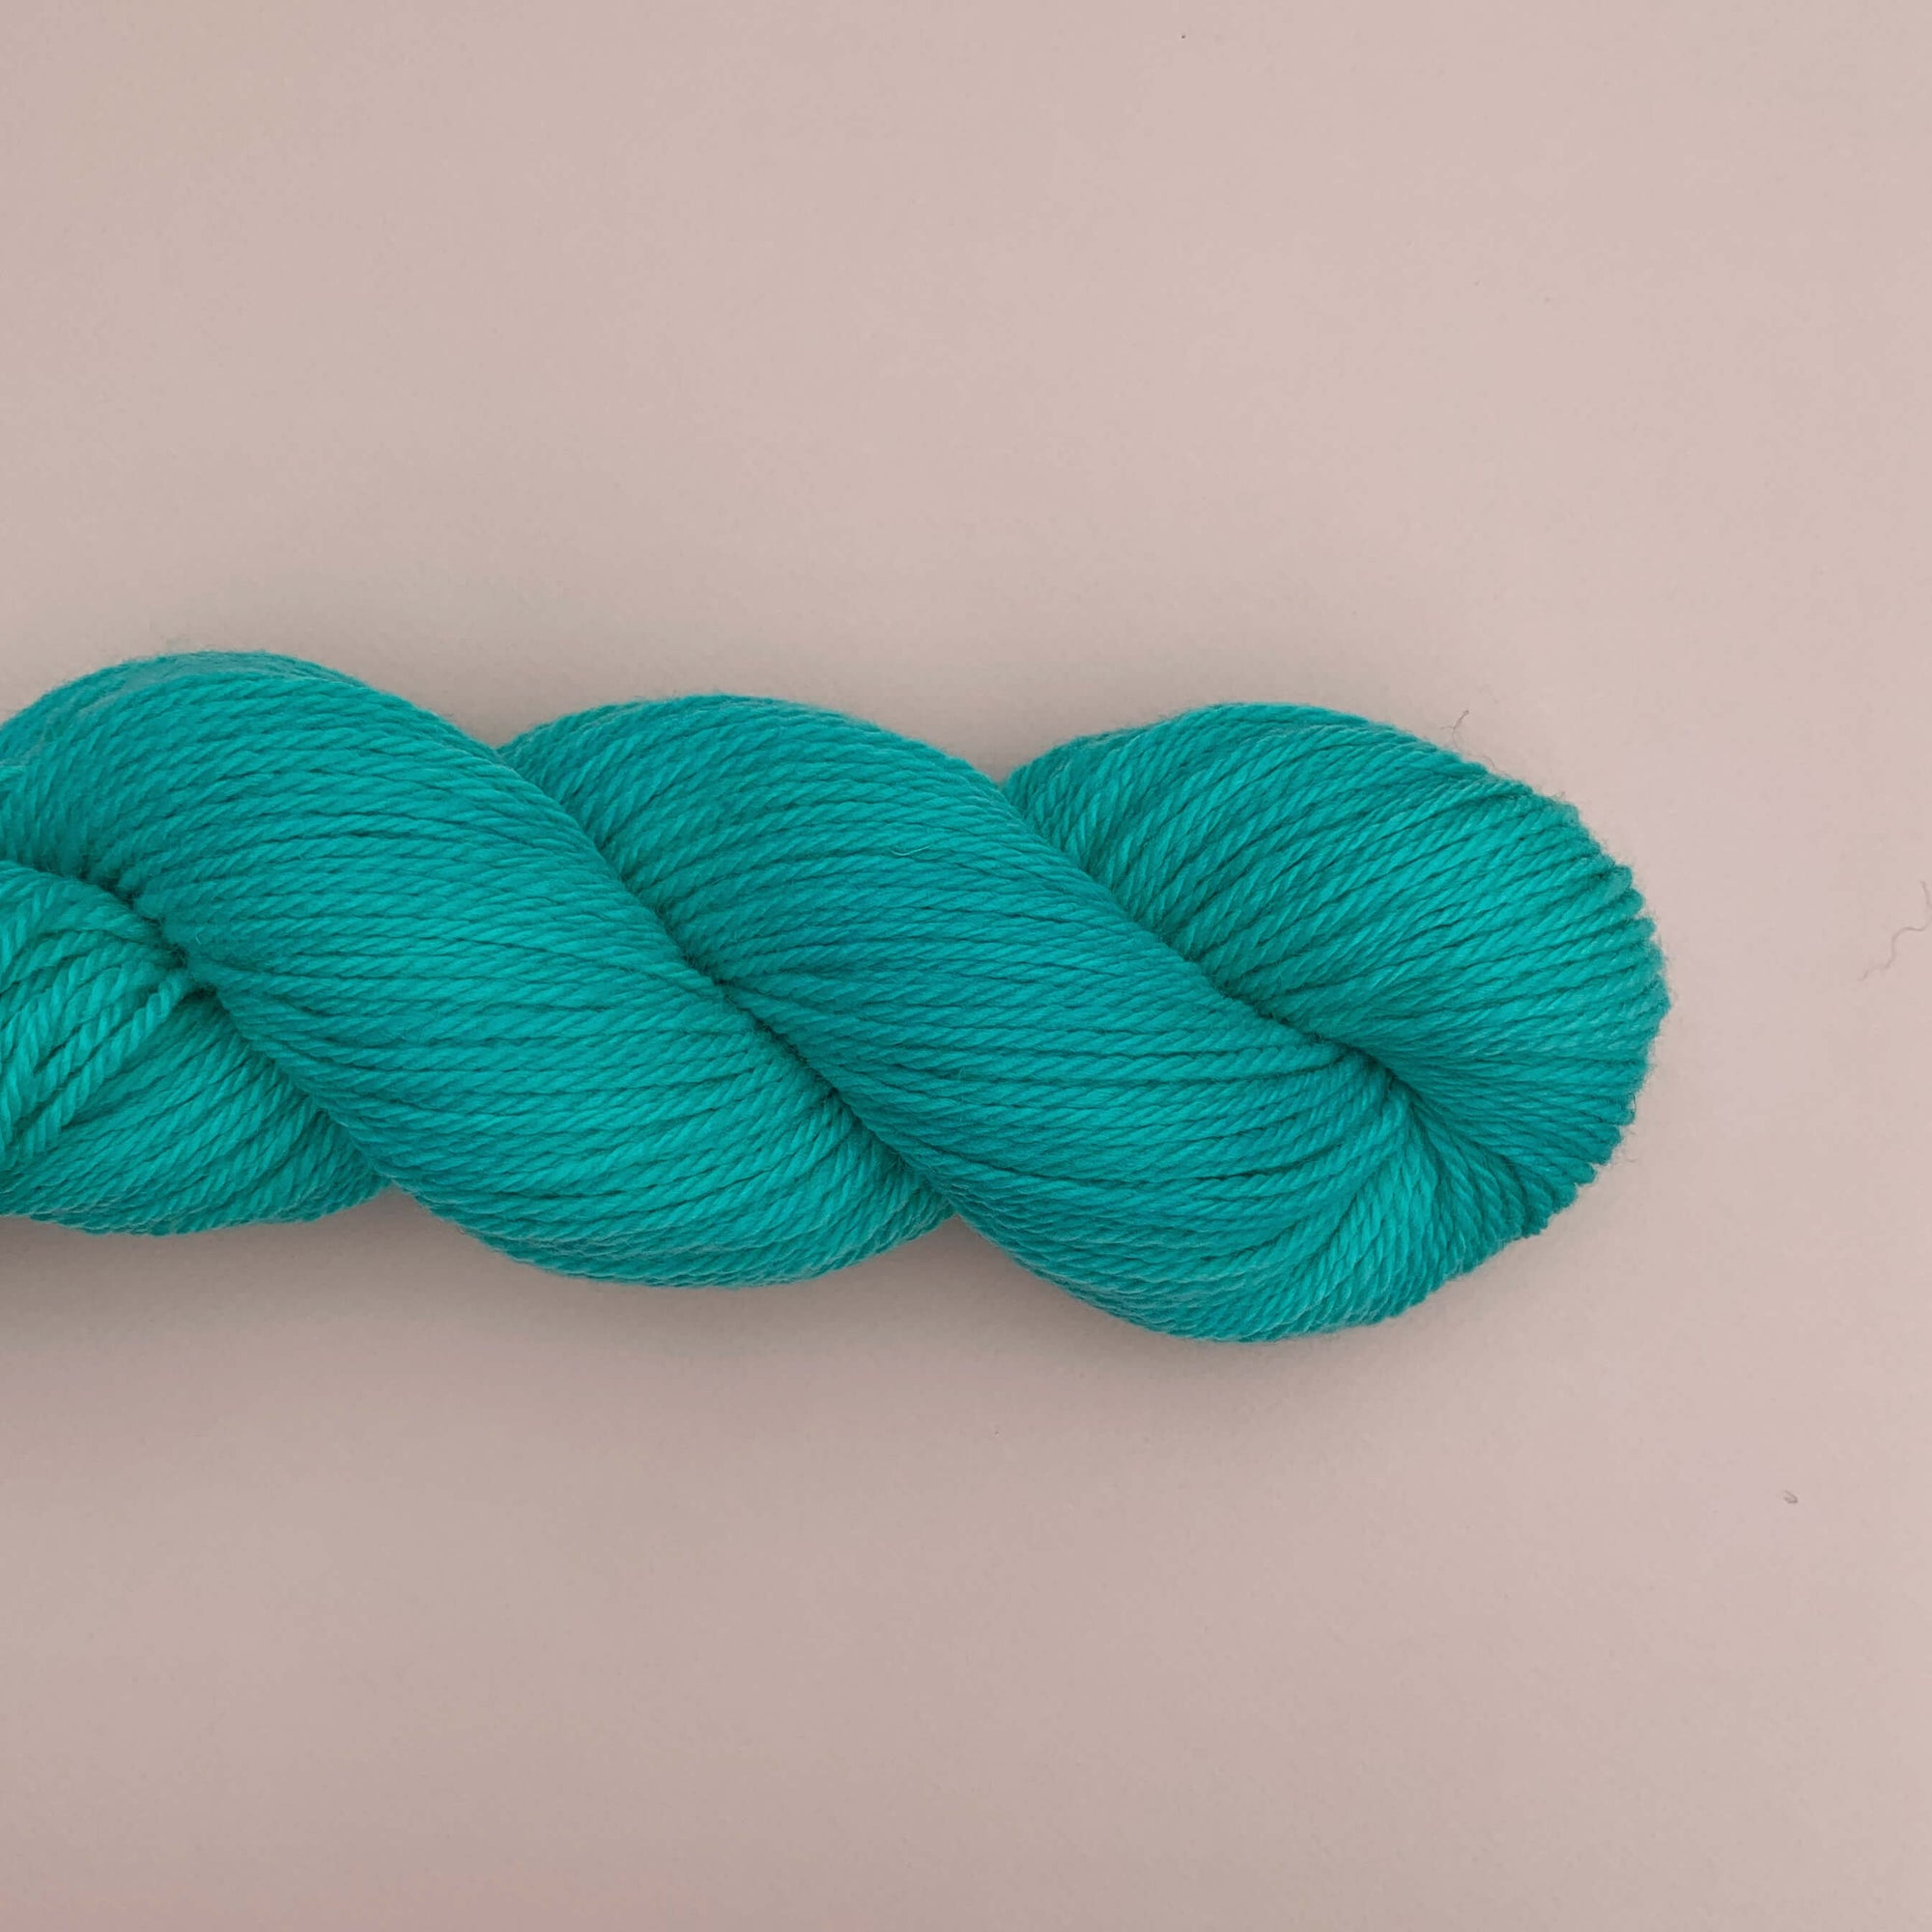 Corriedale Worsted - Fathom